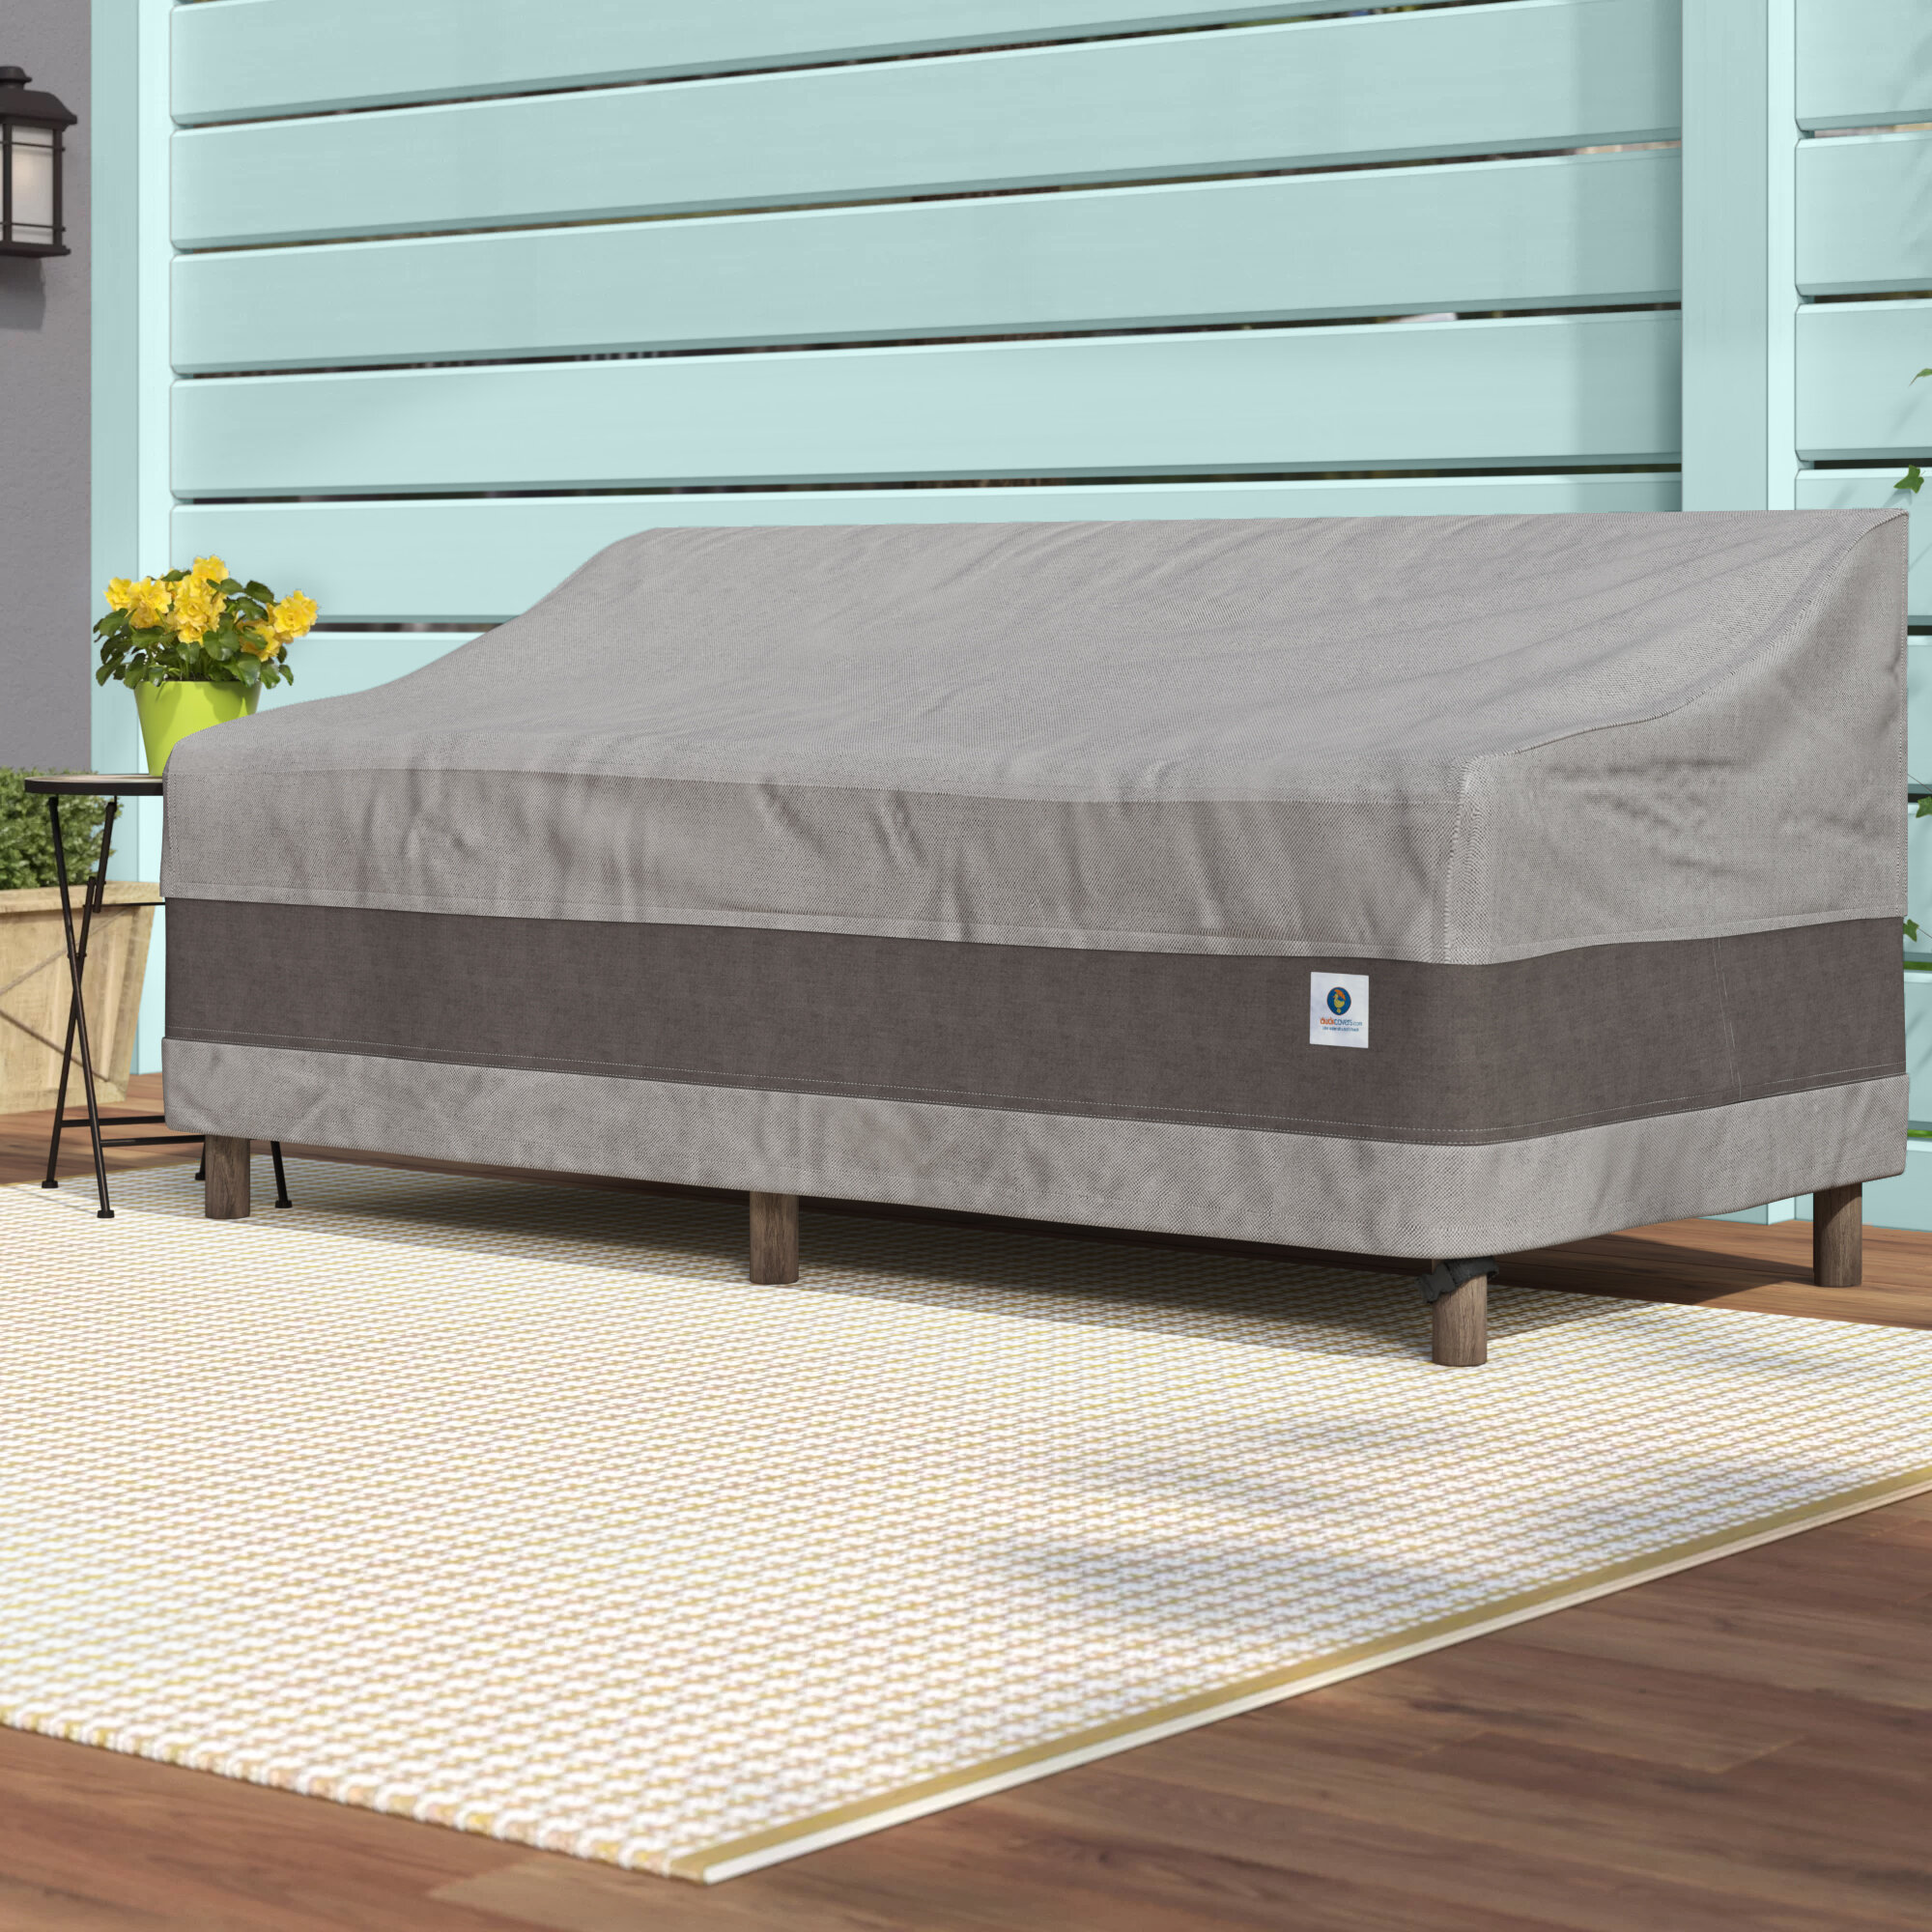 Arlmont Co Steve Water Resistant Patio Sofa Cover With 2 Year Warranty Reviews Wayfair